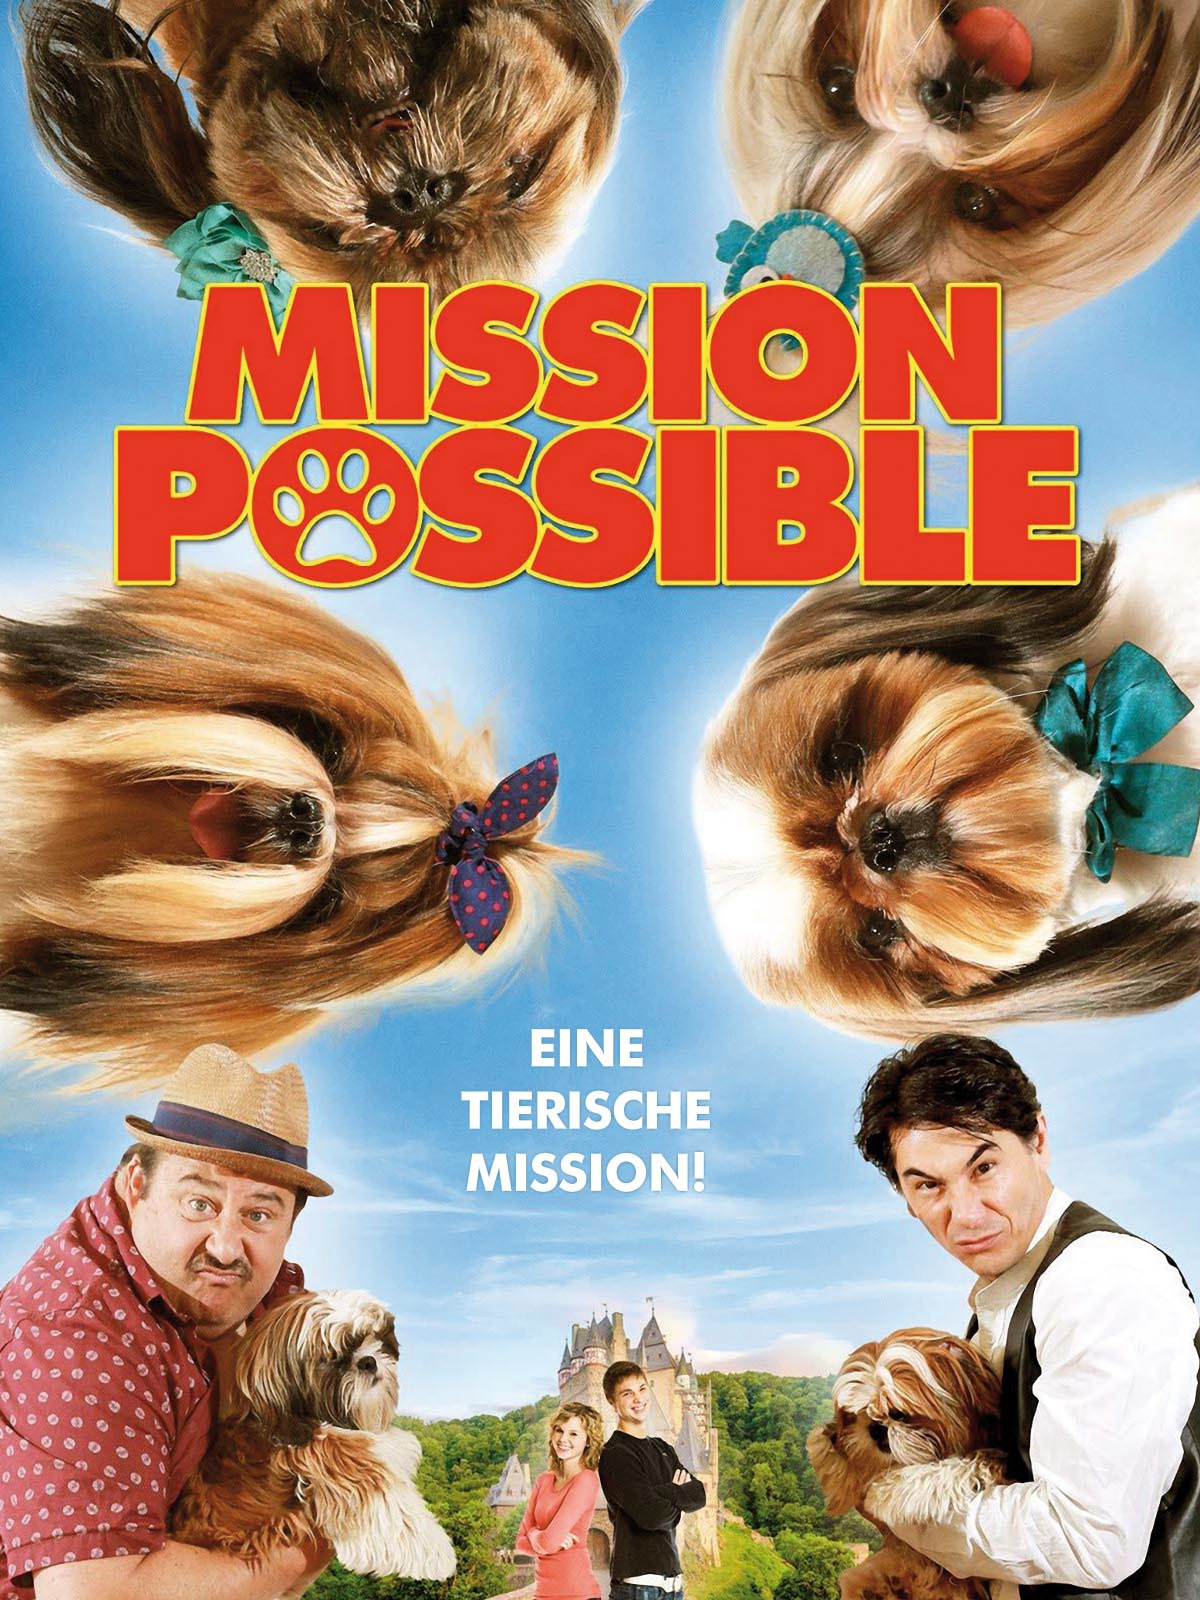 Mission Possible - Eine tierische Mission!